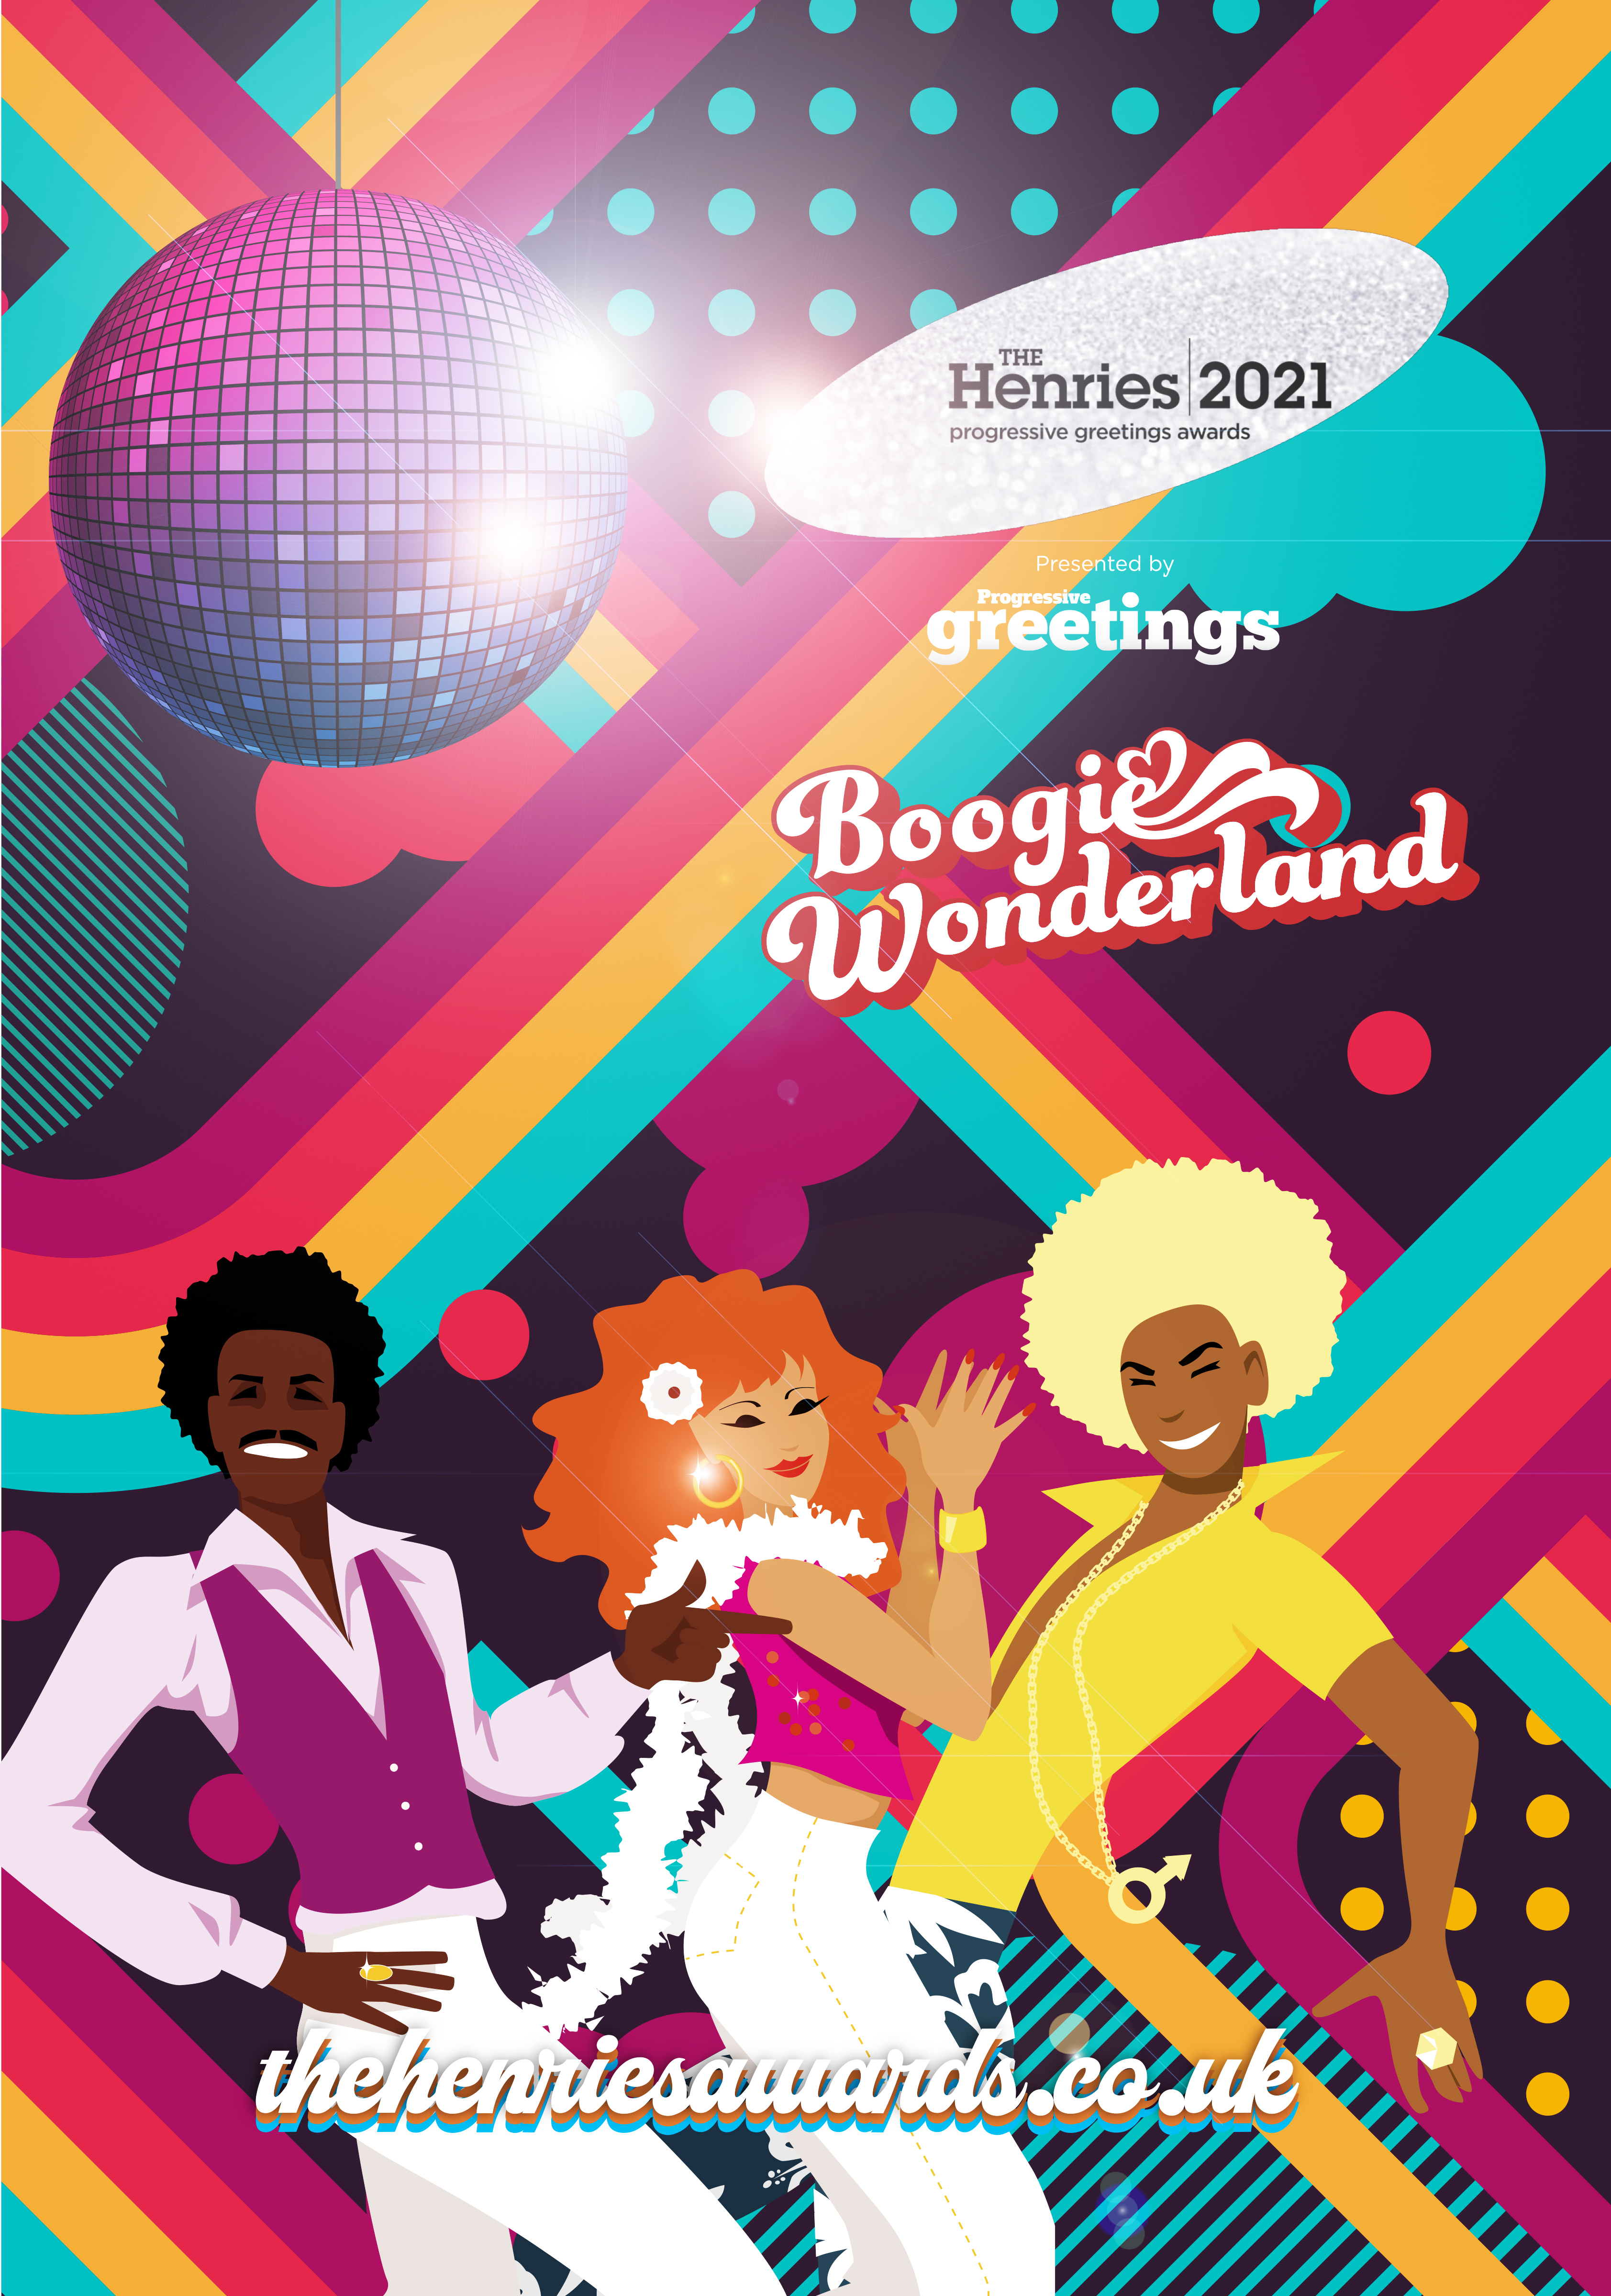 Above: The industry is all set for a Boogie Wonderland party at The Henries this October.